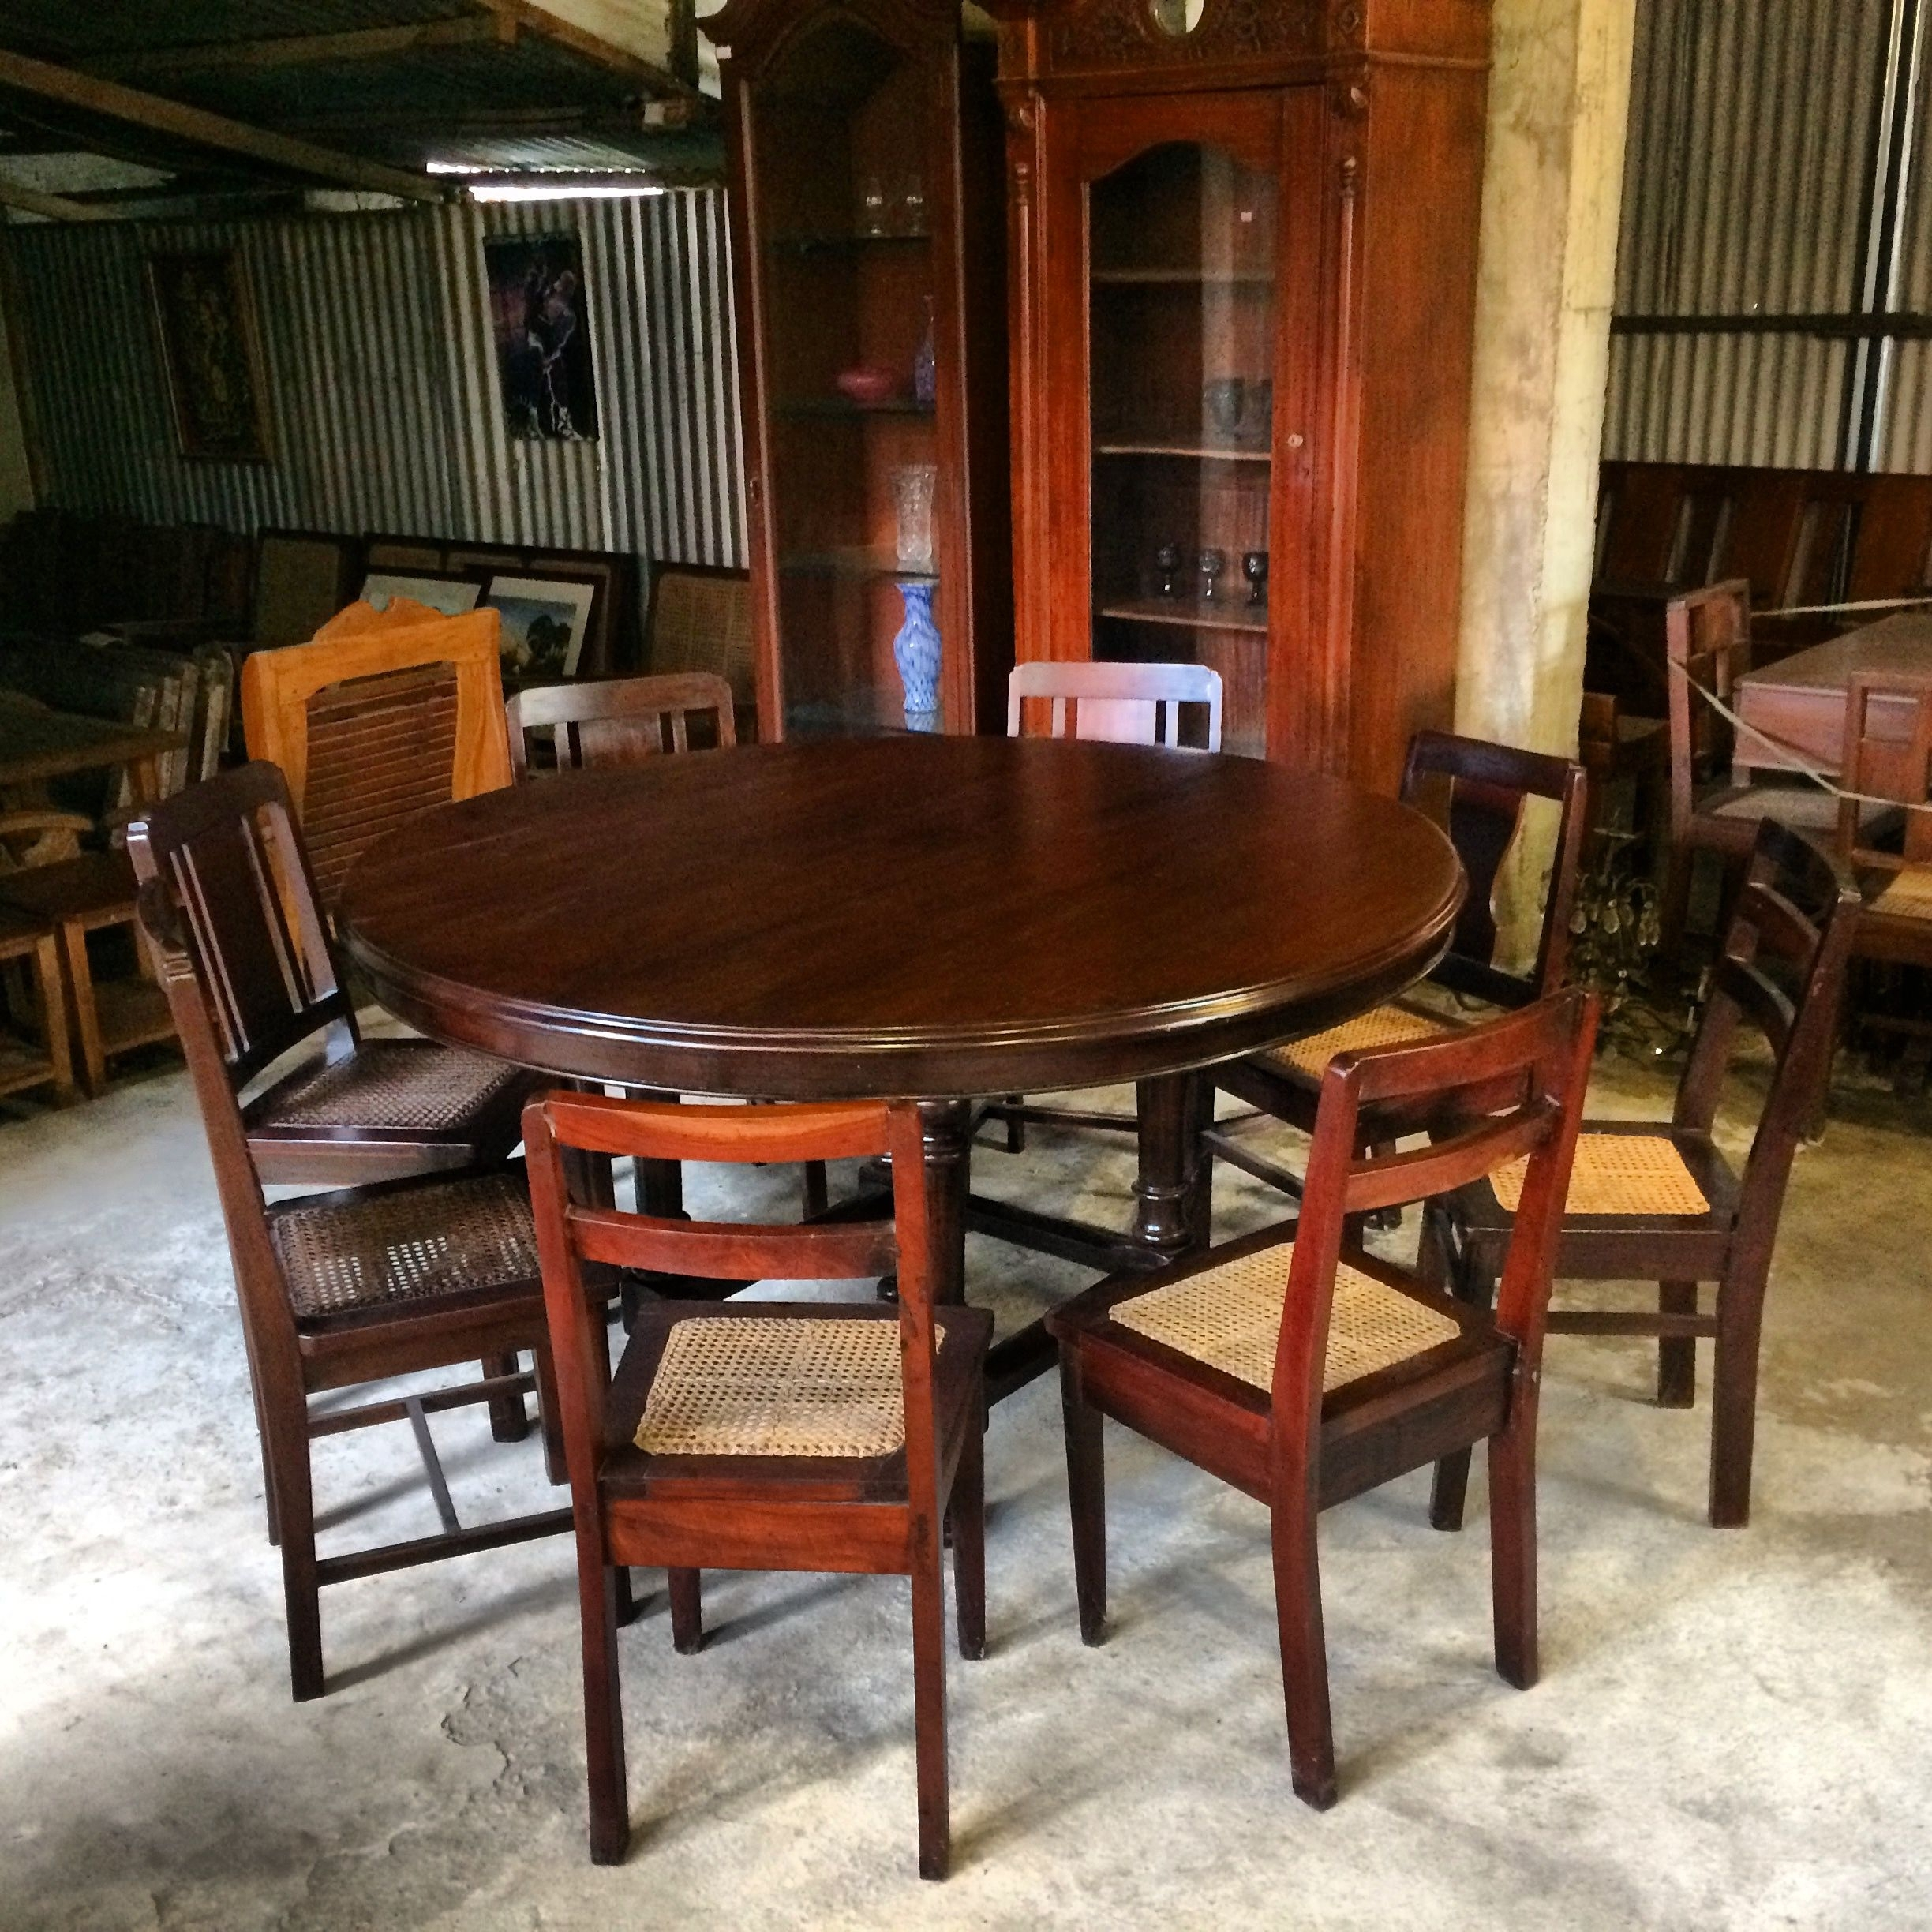 Palazzo 7 Piece Rectangle Dining Sets With Joss Side Chairs Inside 2017 My 6 7 Seater Vintage — Narra Dining Table — (View 15 of 25)